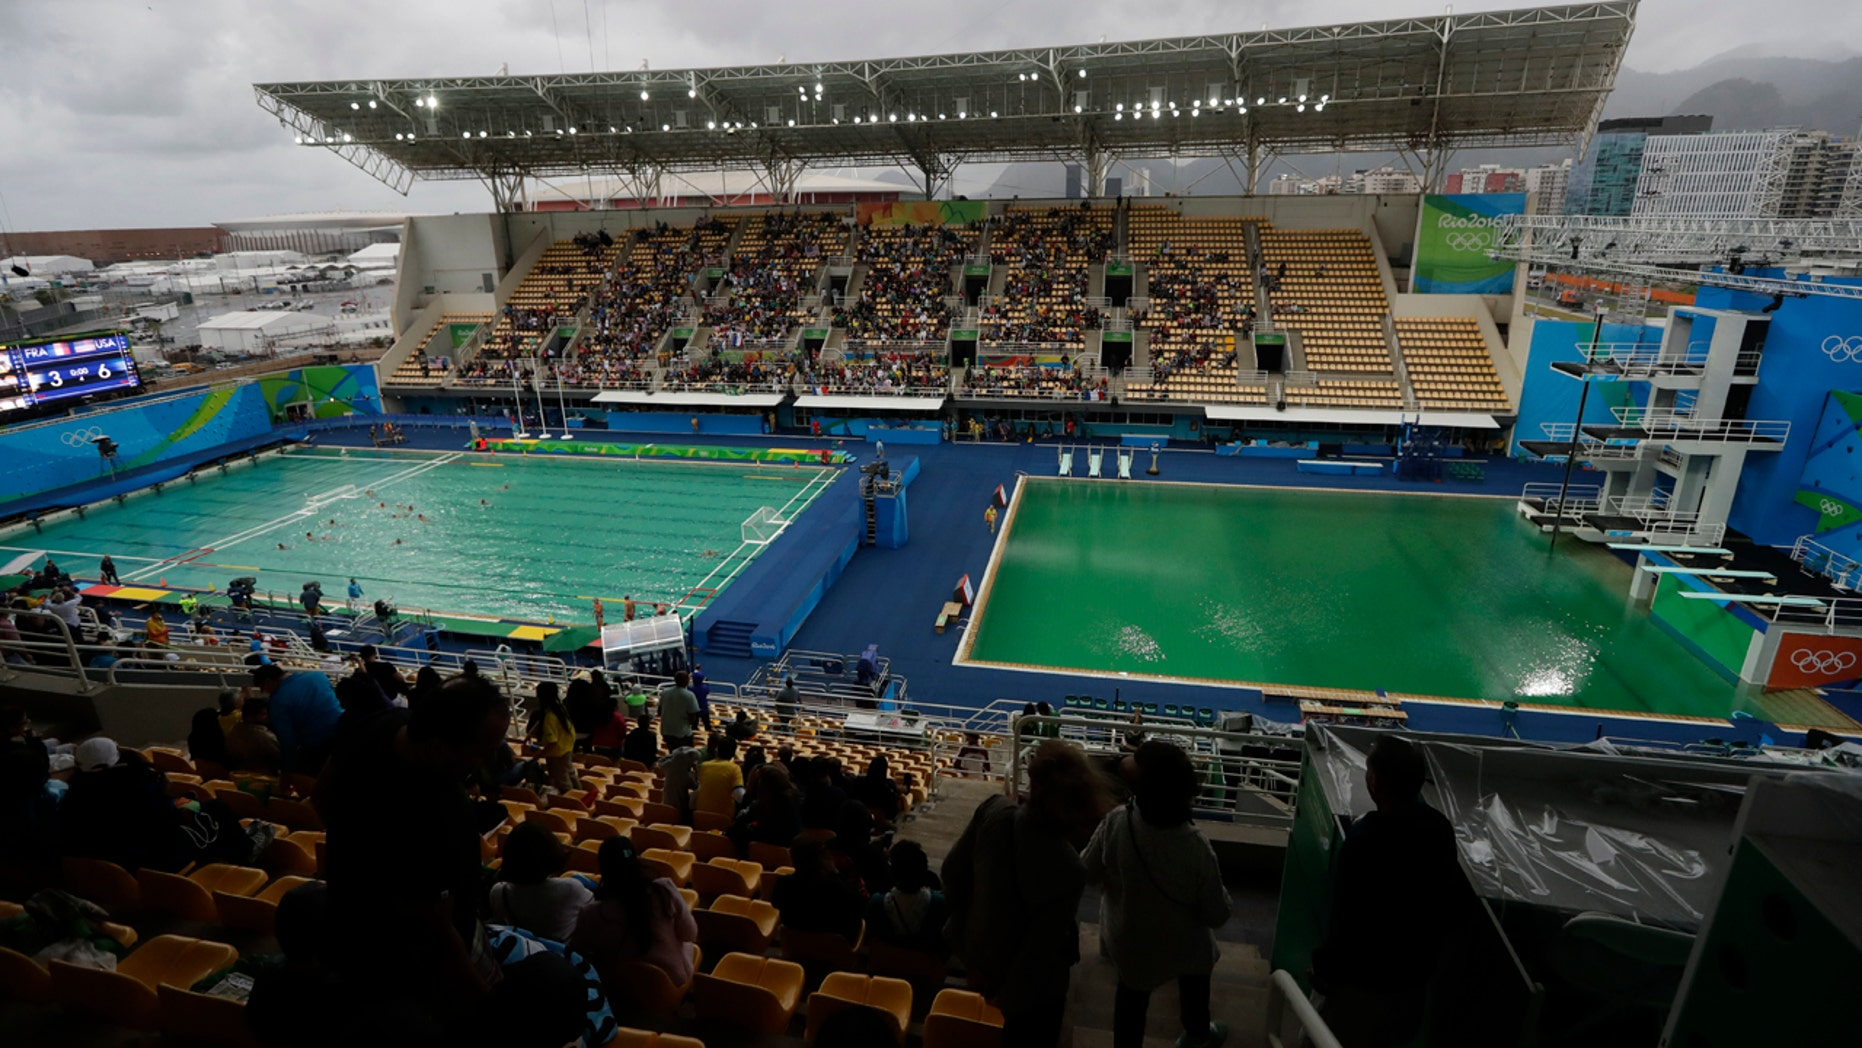 Aug. 10, 2016: The water of the diving pool at right appears a murky green as the water polo pool at left appears a greener color than the previous day during a preliminary round match between United States and France in the Maria Lenk Aquatic Center at the 2016 Summer Olympics in Rio de Janeiro, Brazil.